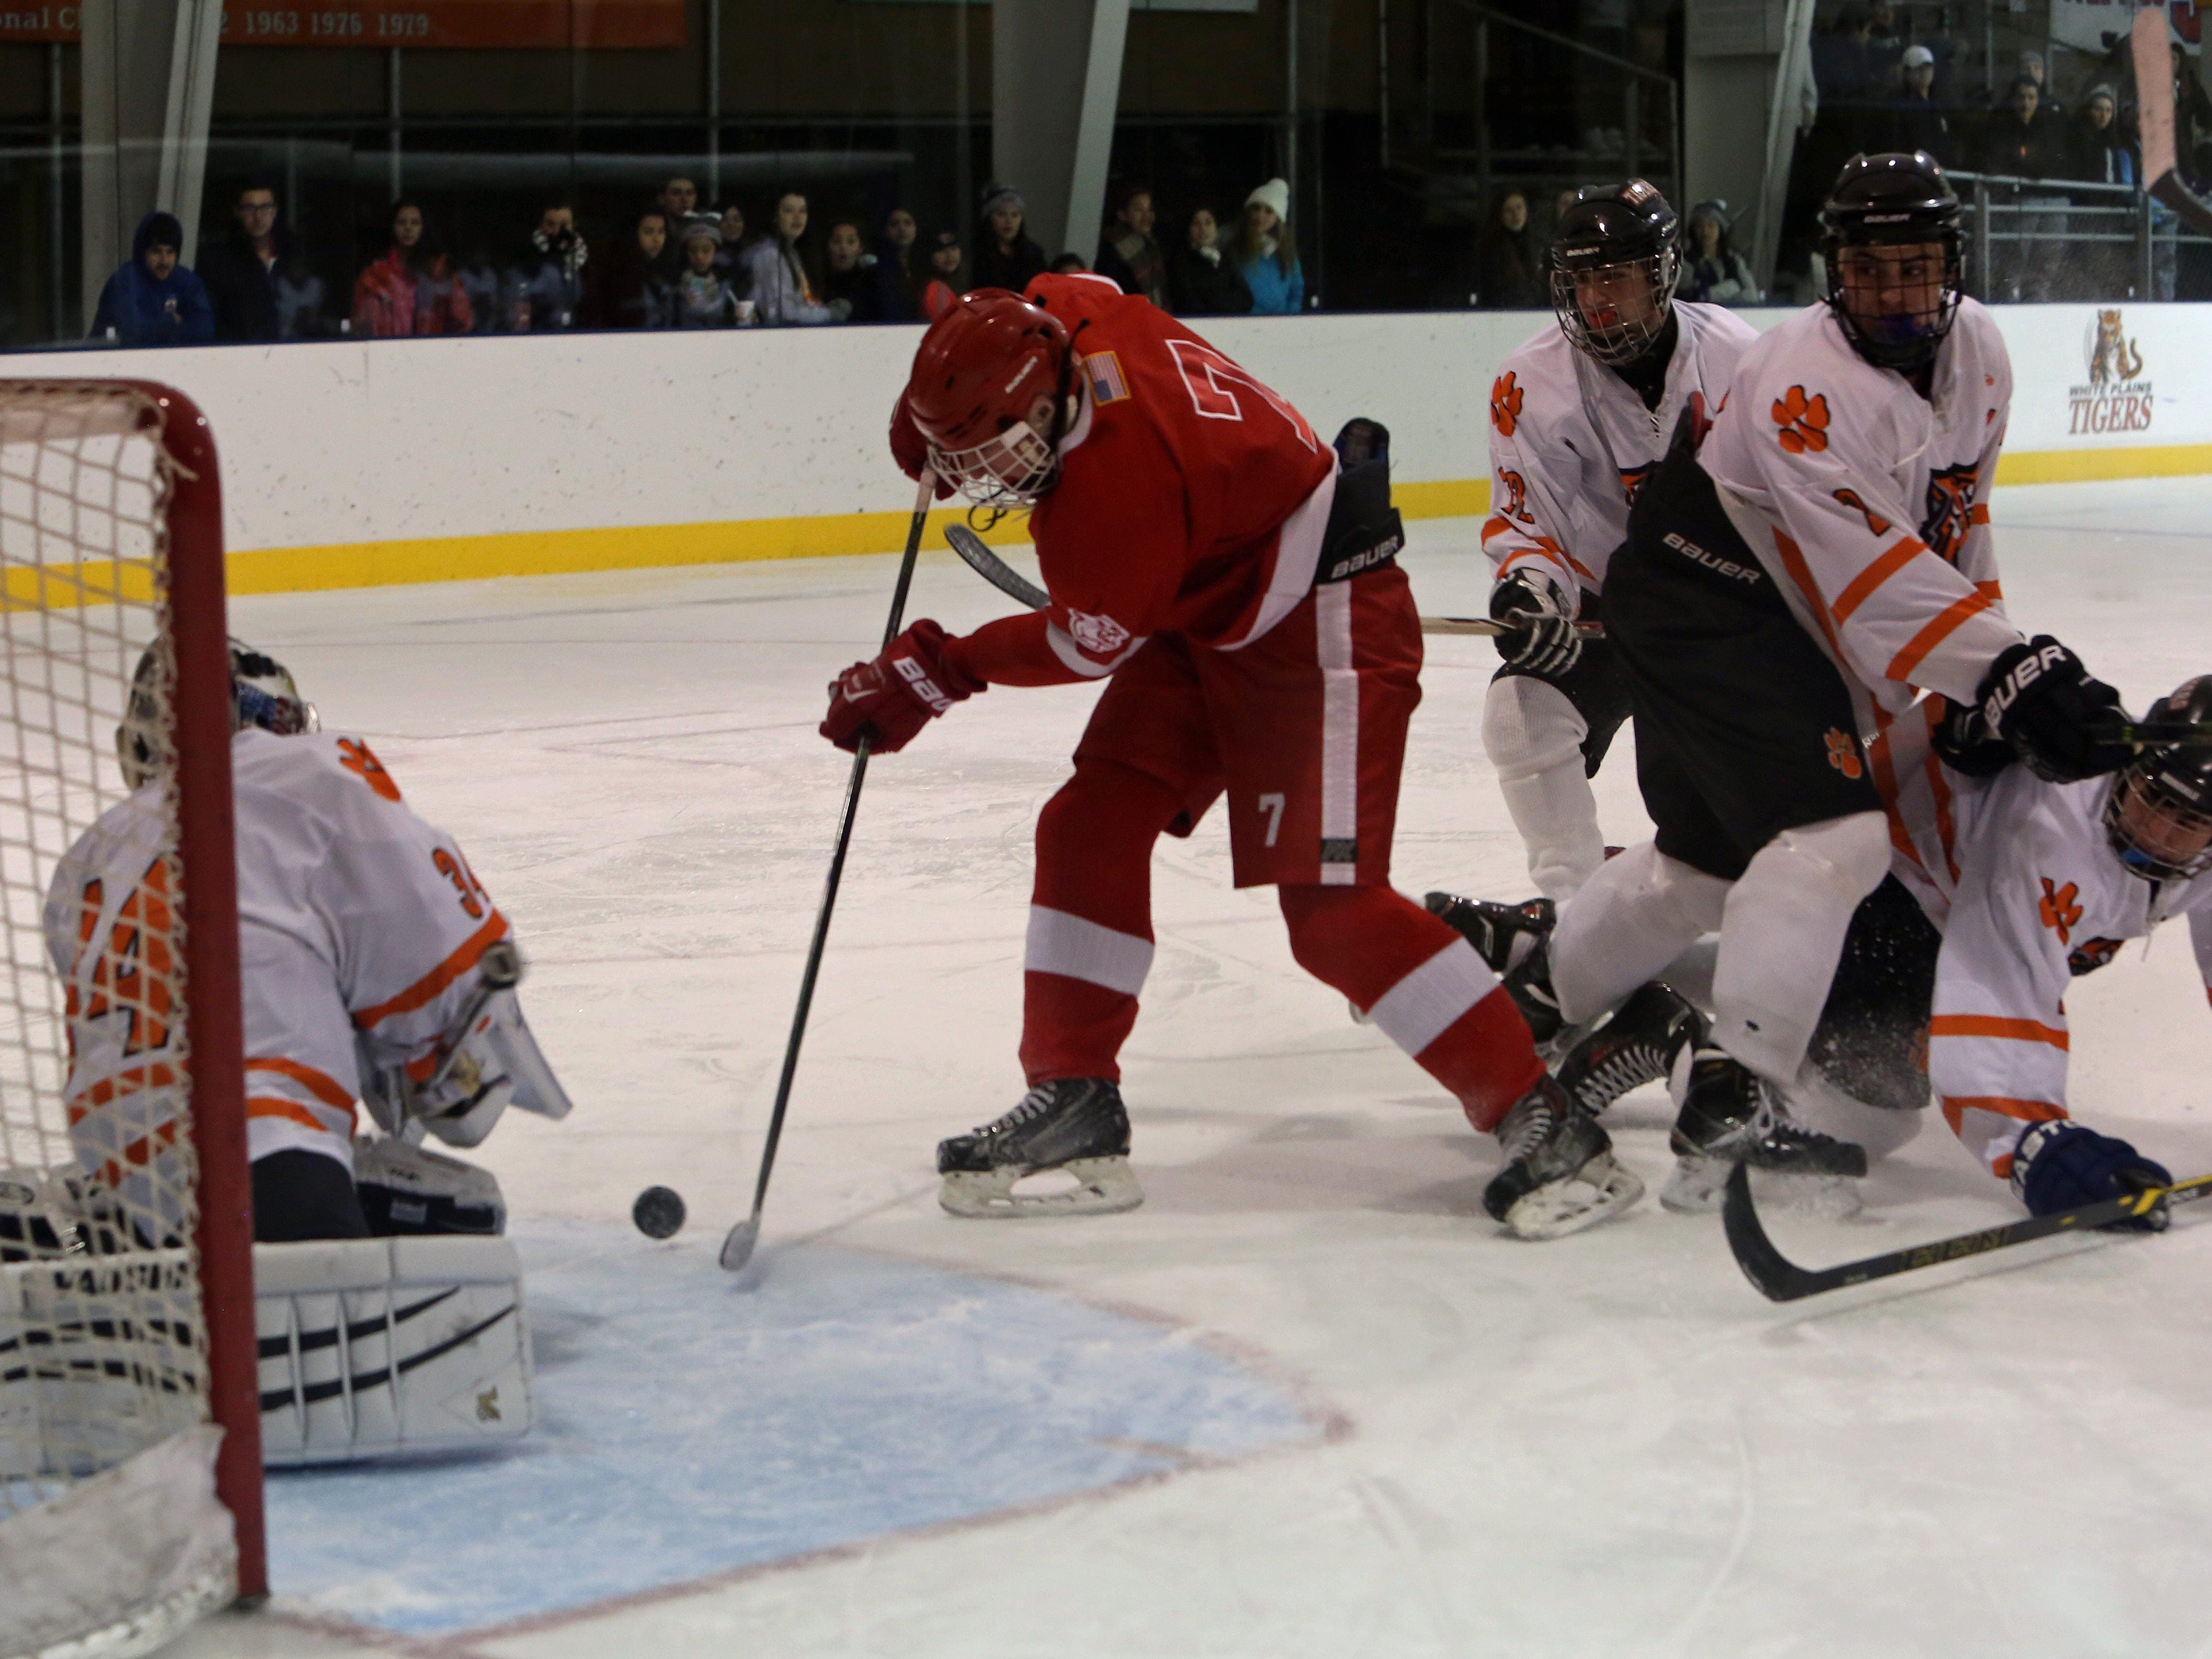 White Plains goalie Justin Schulz stops a shot by North Rockland's Bryan Jensen during a game at Ebersole Ice Rink in White Plains on Thursday. The game ended in a 4-4 tie.